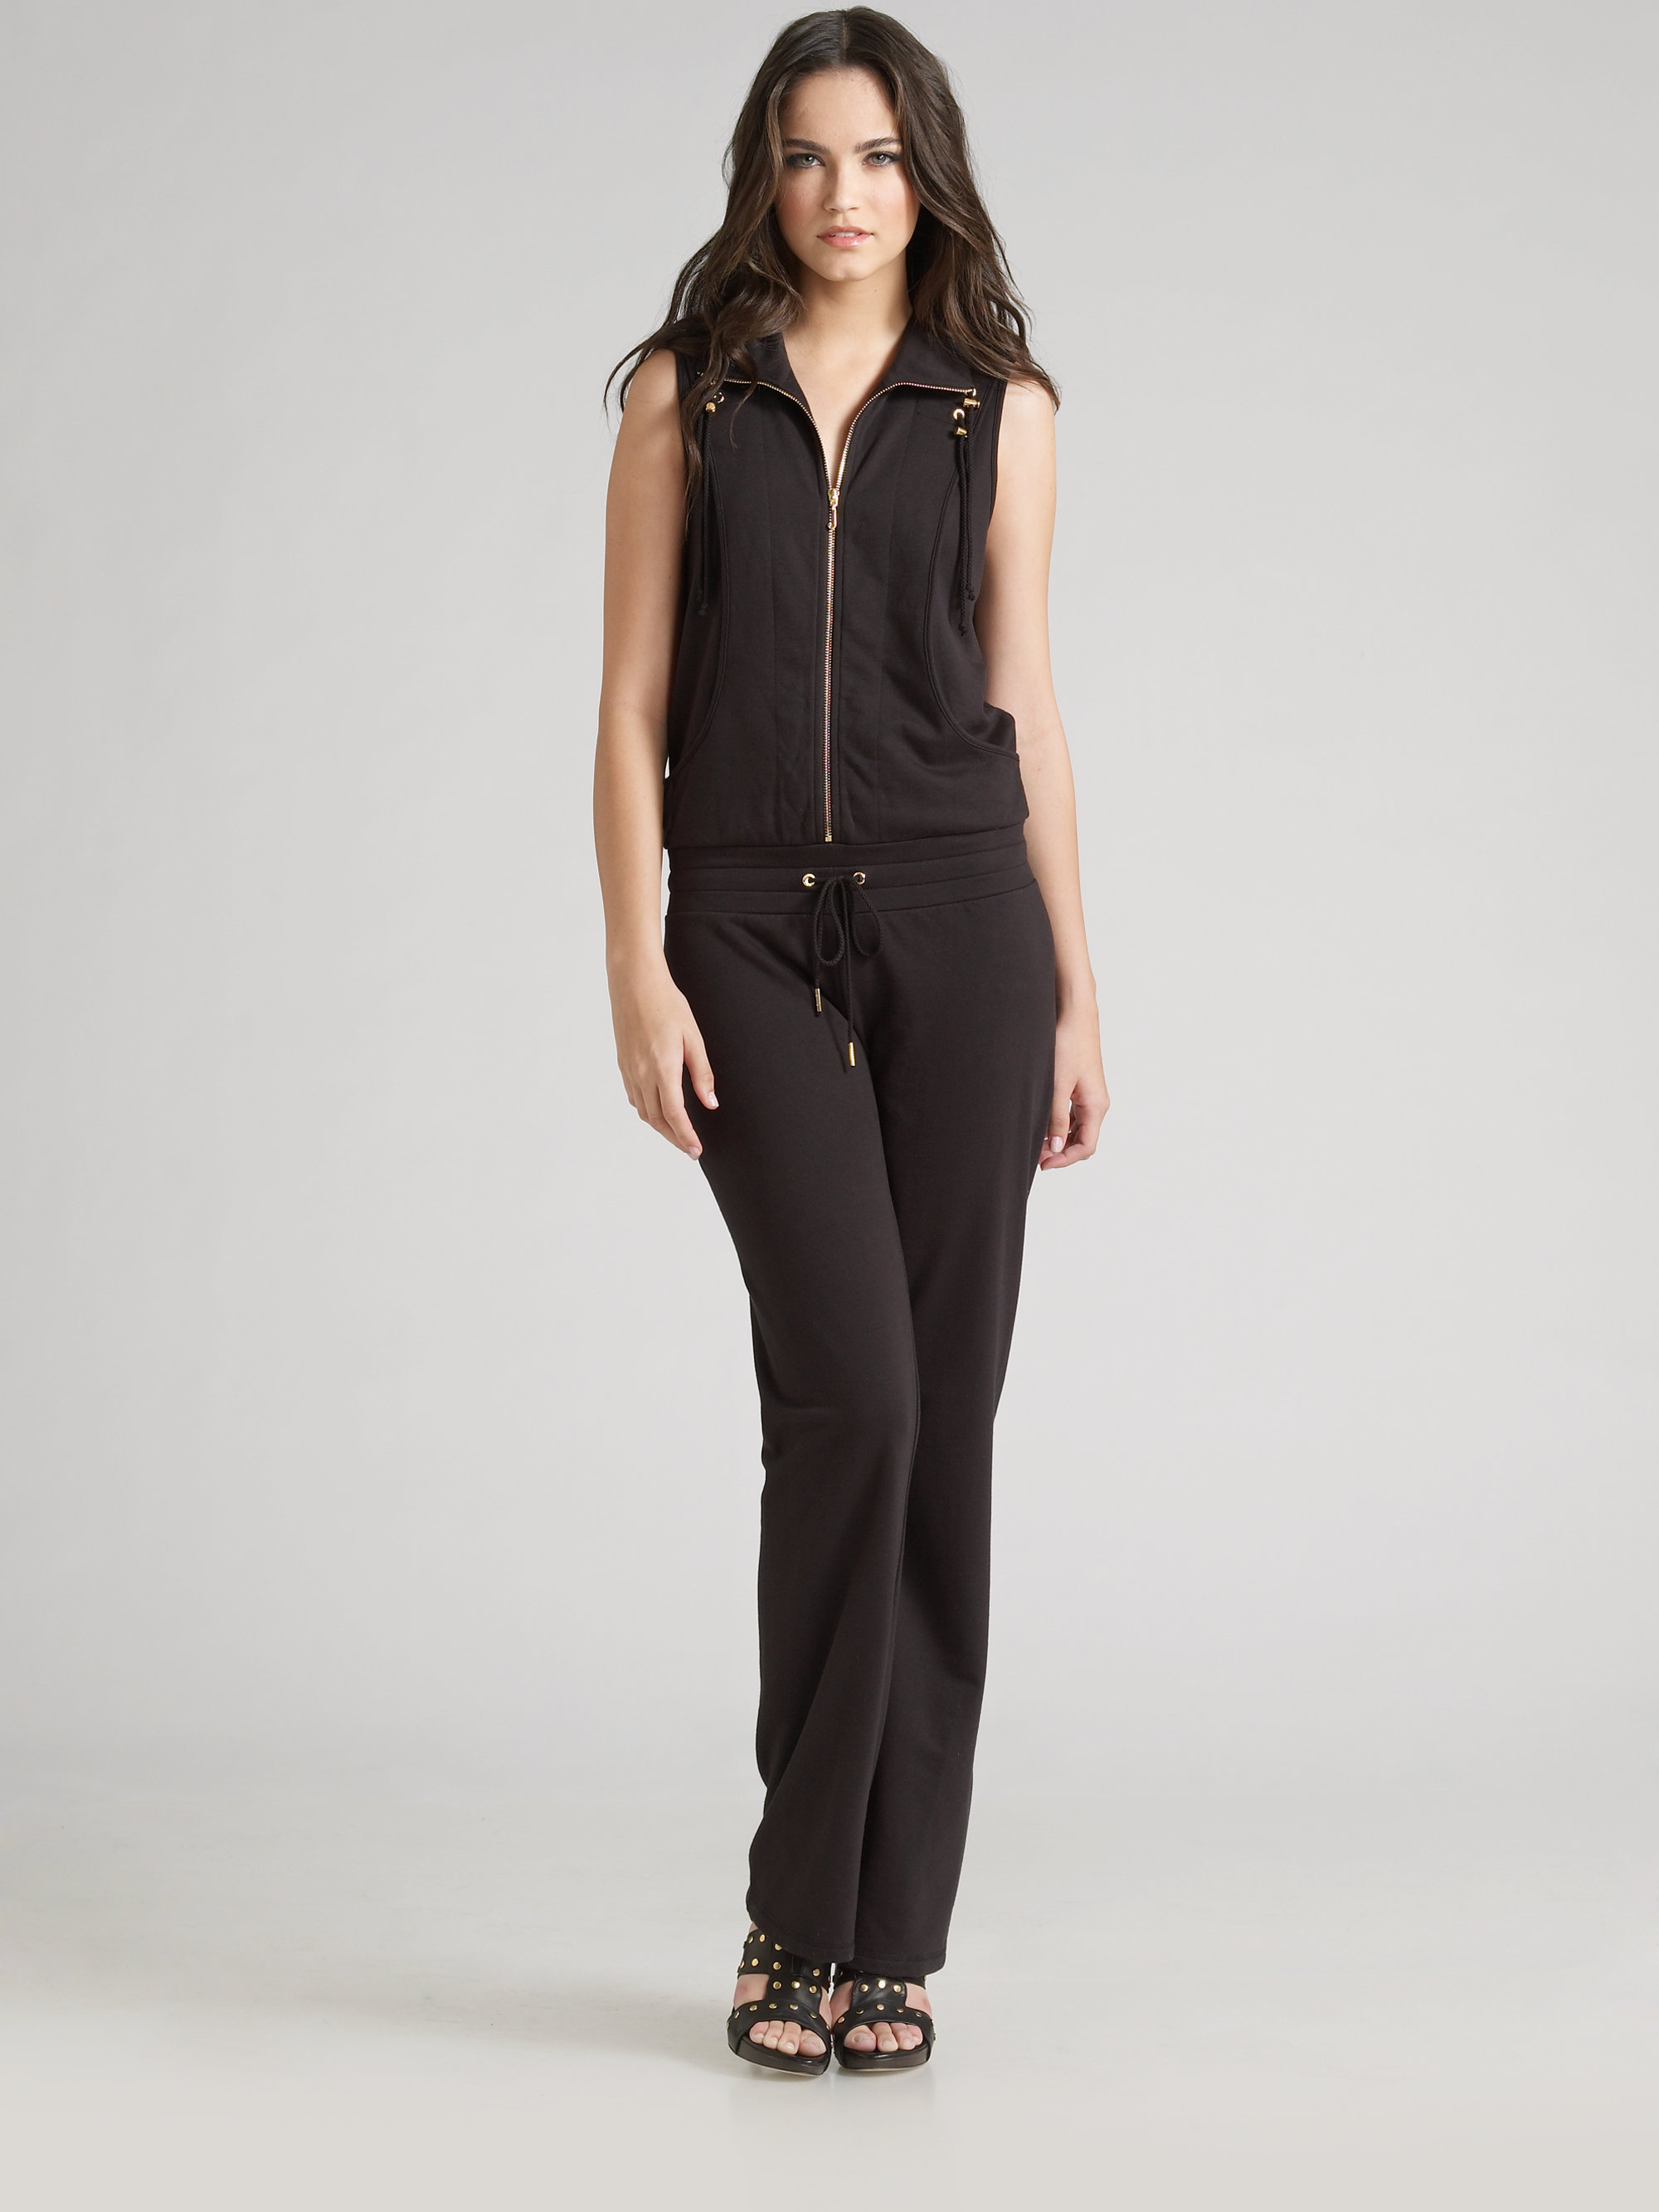 d32887945fce Lyst - Juicy Couture Track Jumpsuit in Gray